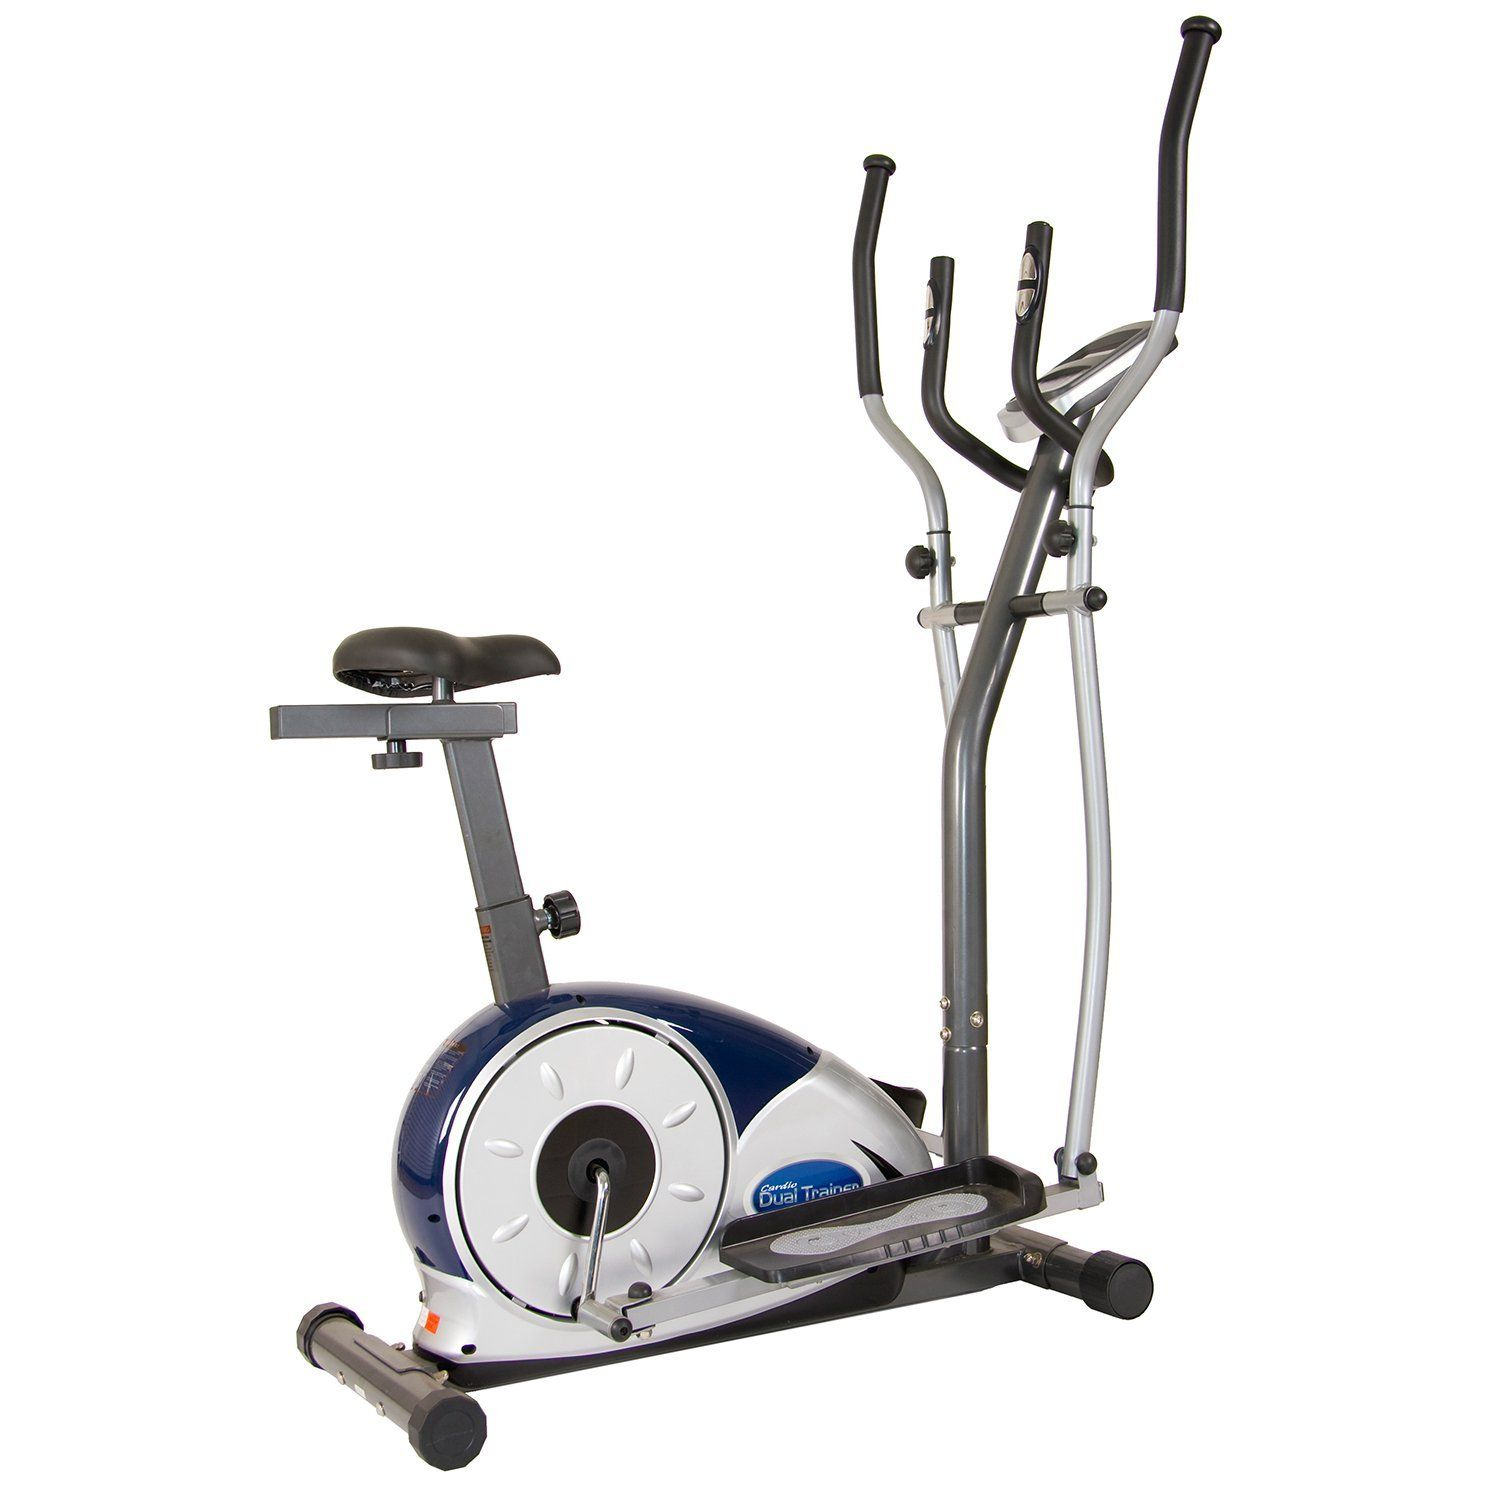 Top 10 Best Elliptical Machines In 2017 Upright Exercise Bike